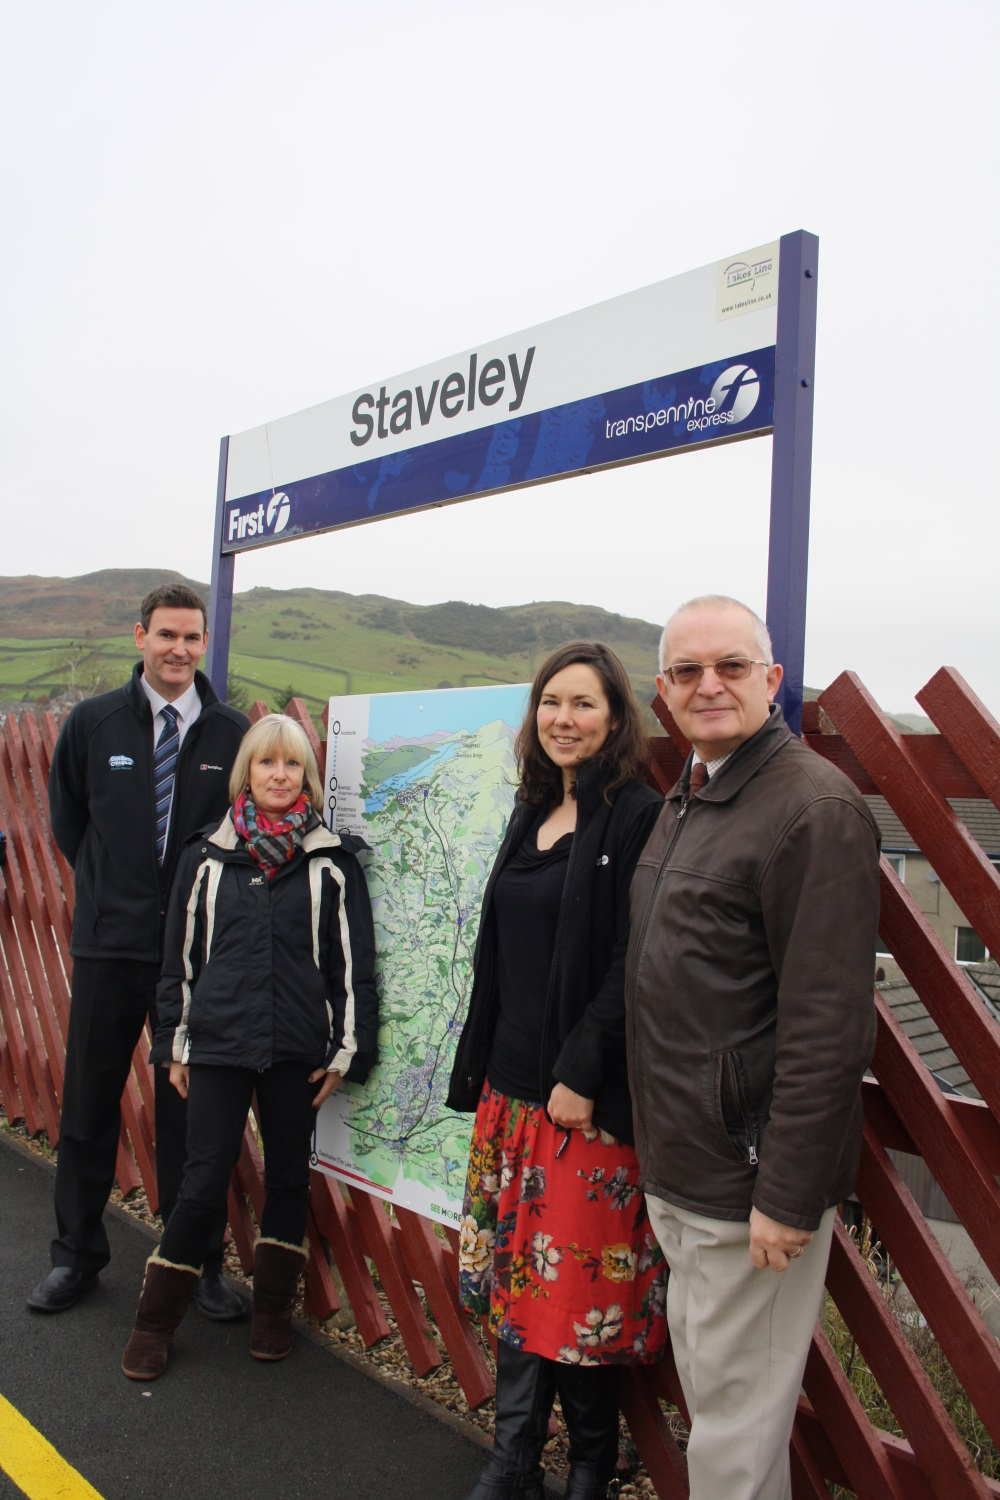 A group of people standing next to a Staveley sign